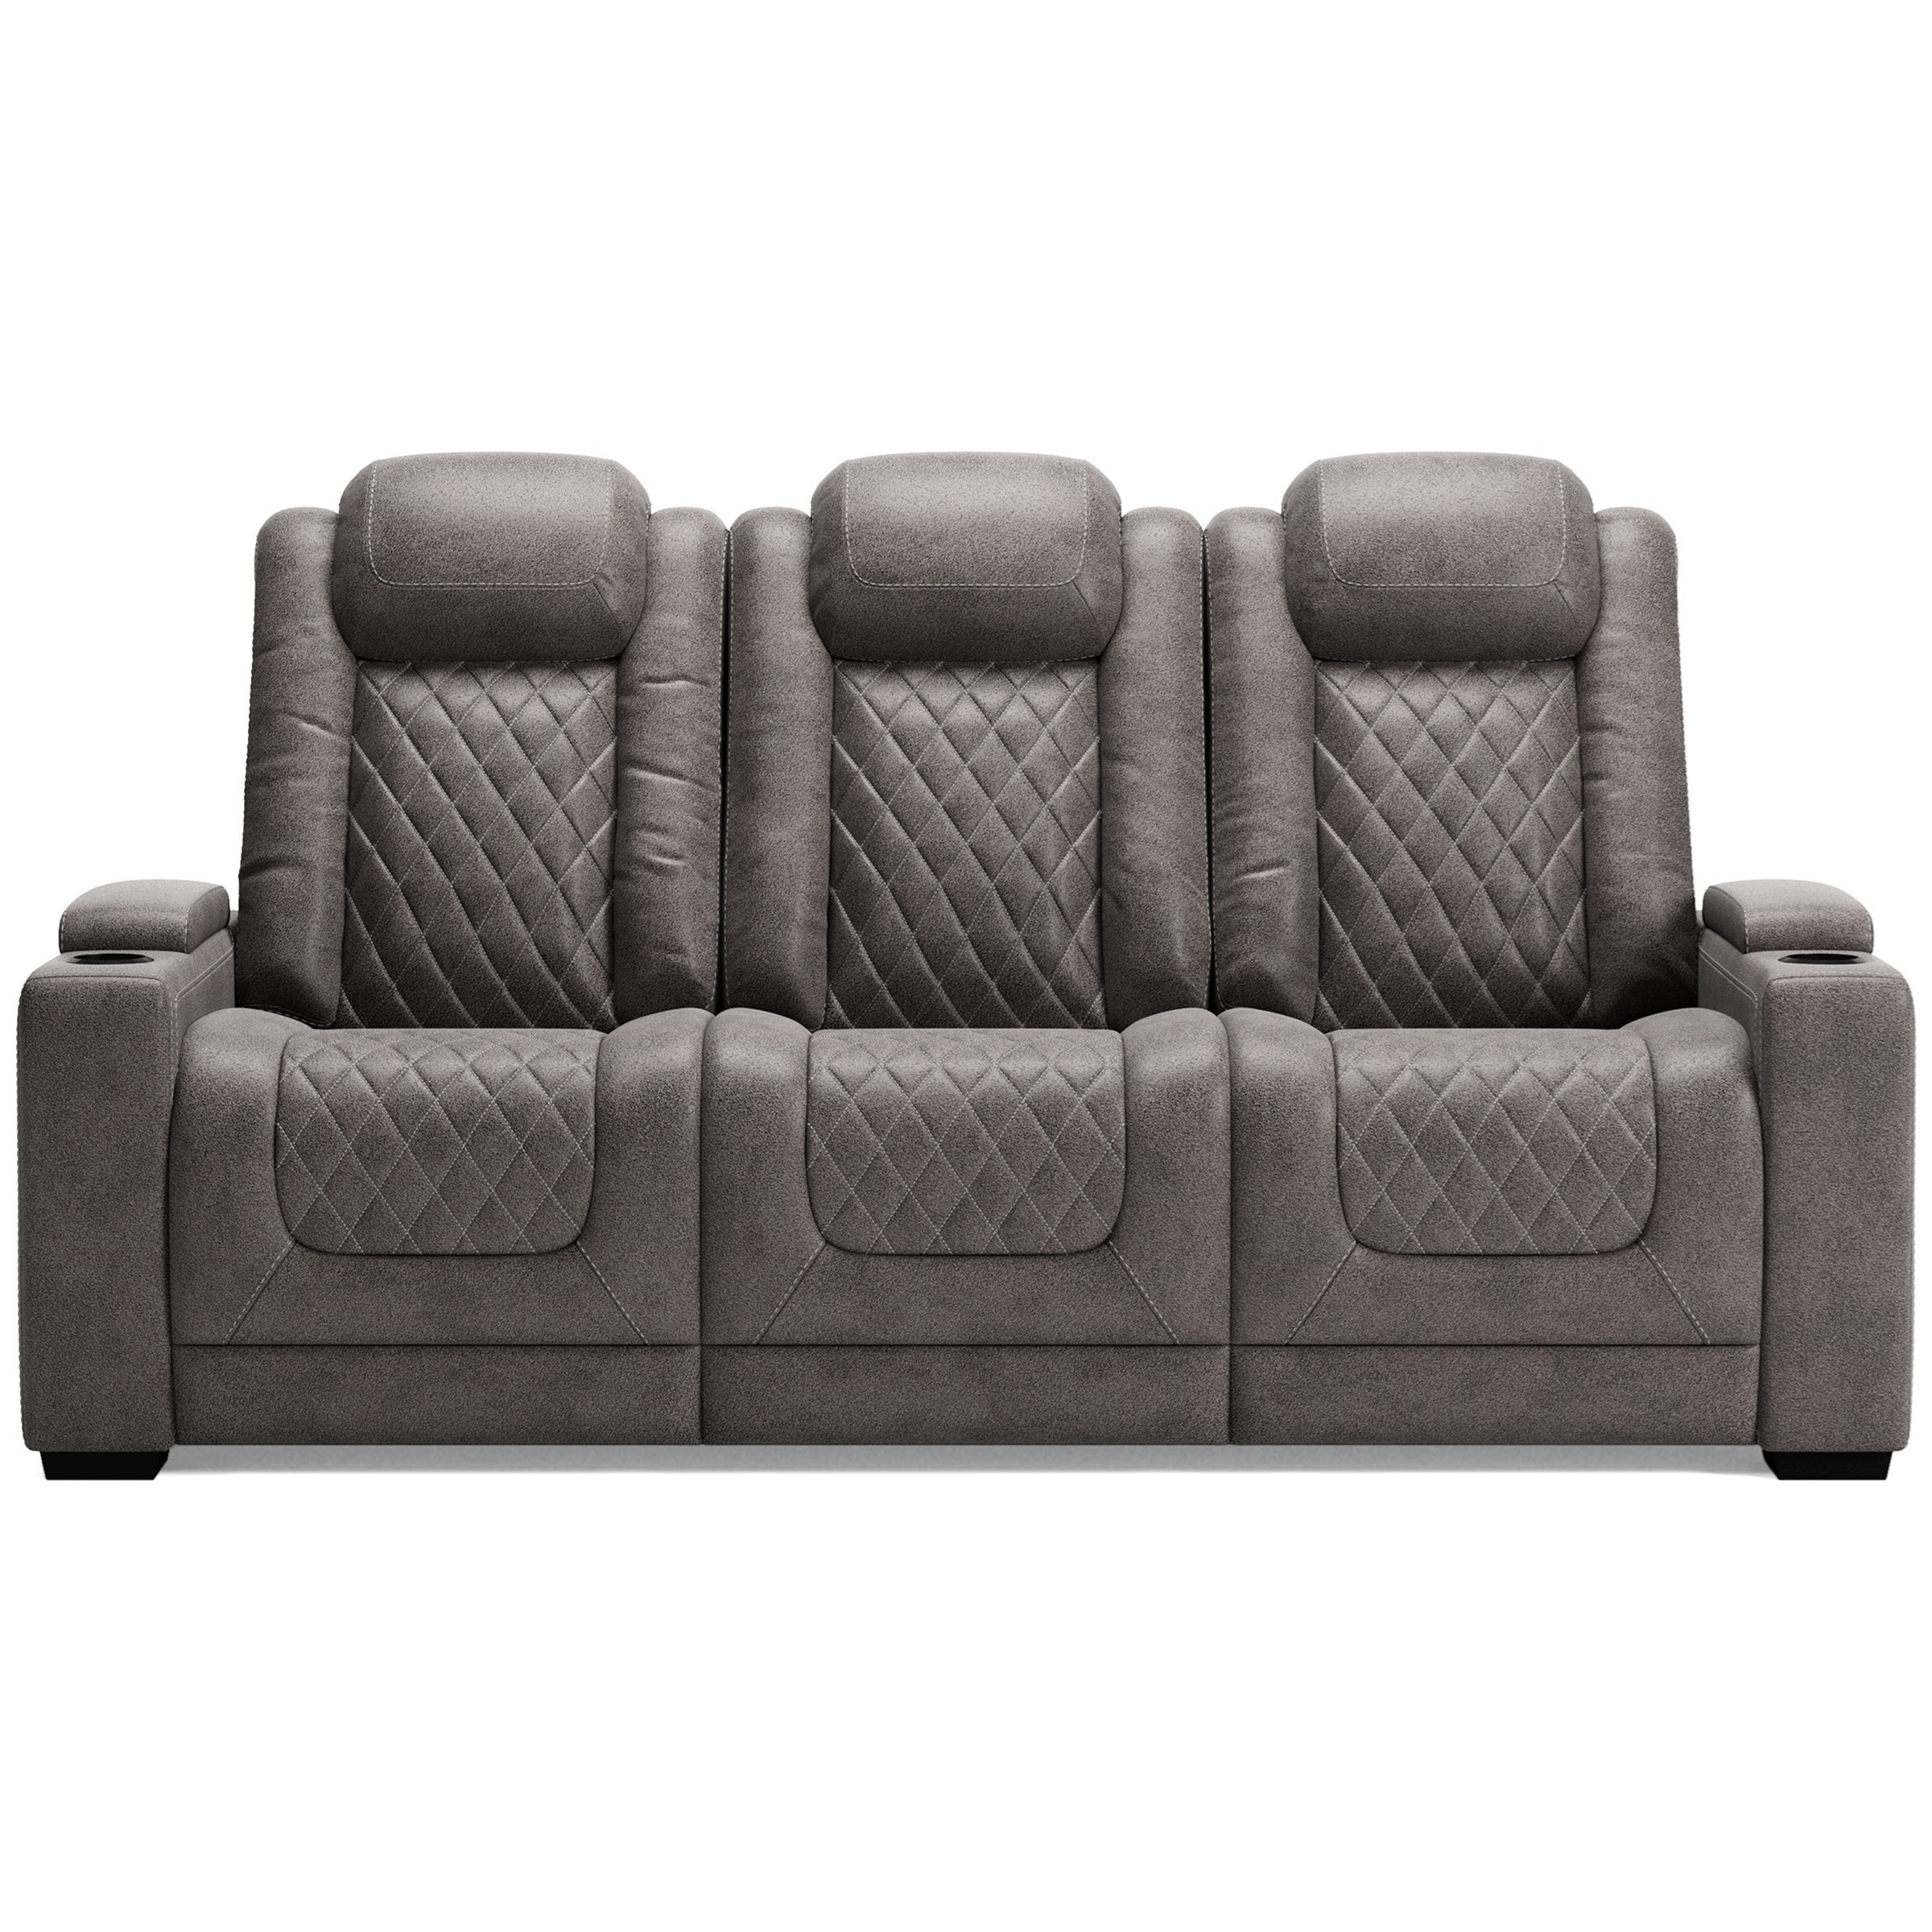 Hyllmont Pwr Rec Sofa with Adj Headrests by Signature Design by Ashley at Zak's Warehouse Clearance Center